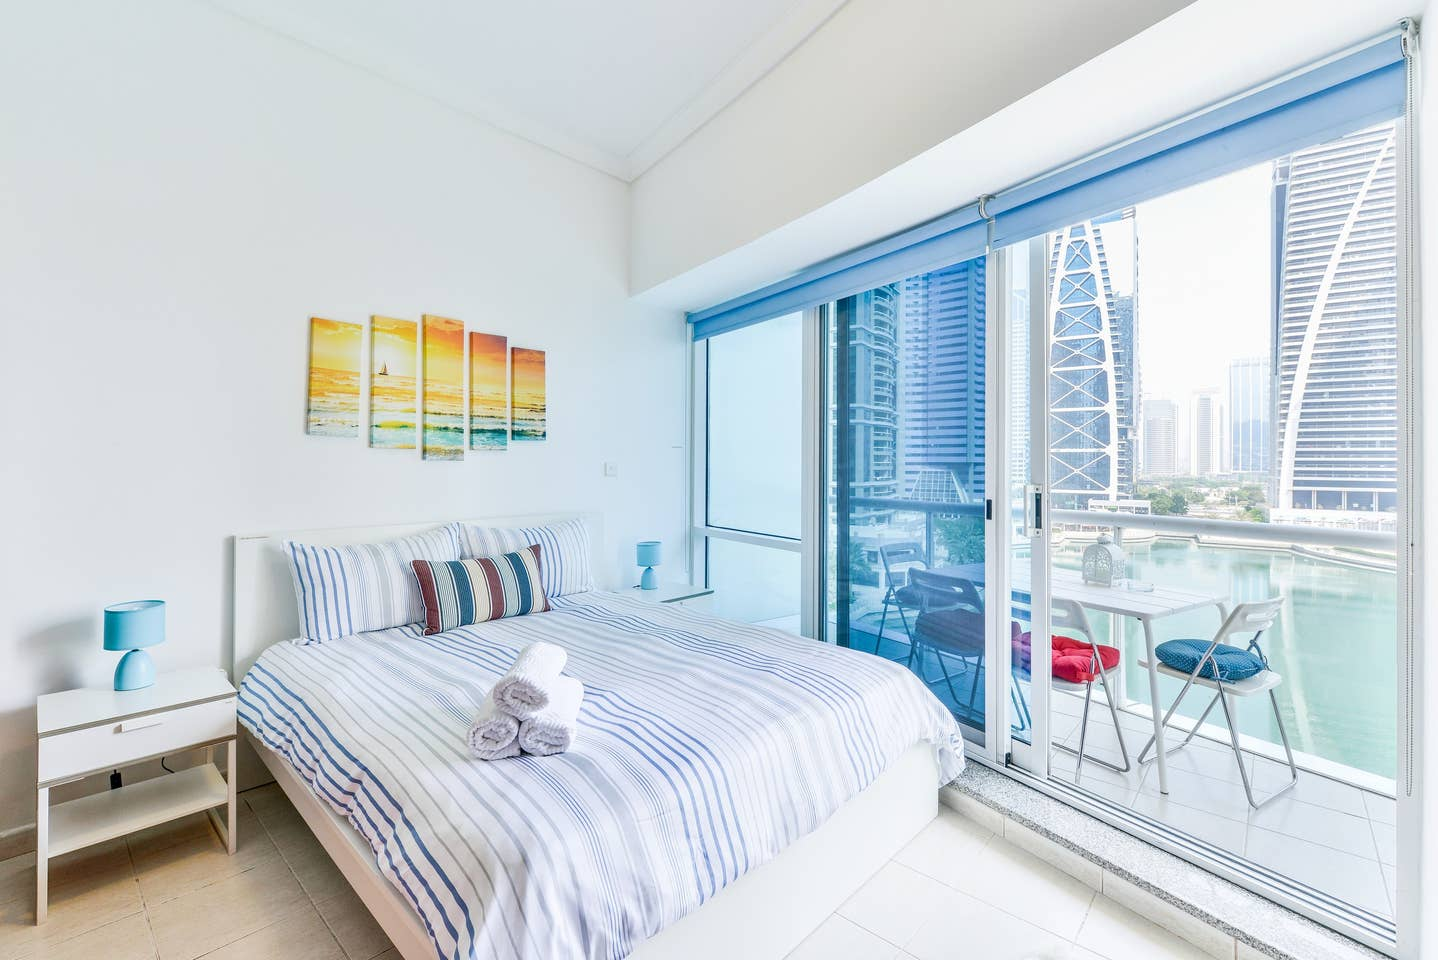 Cheap Dubai Airbnb